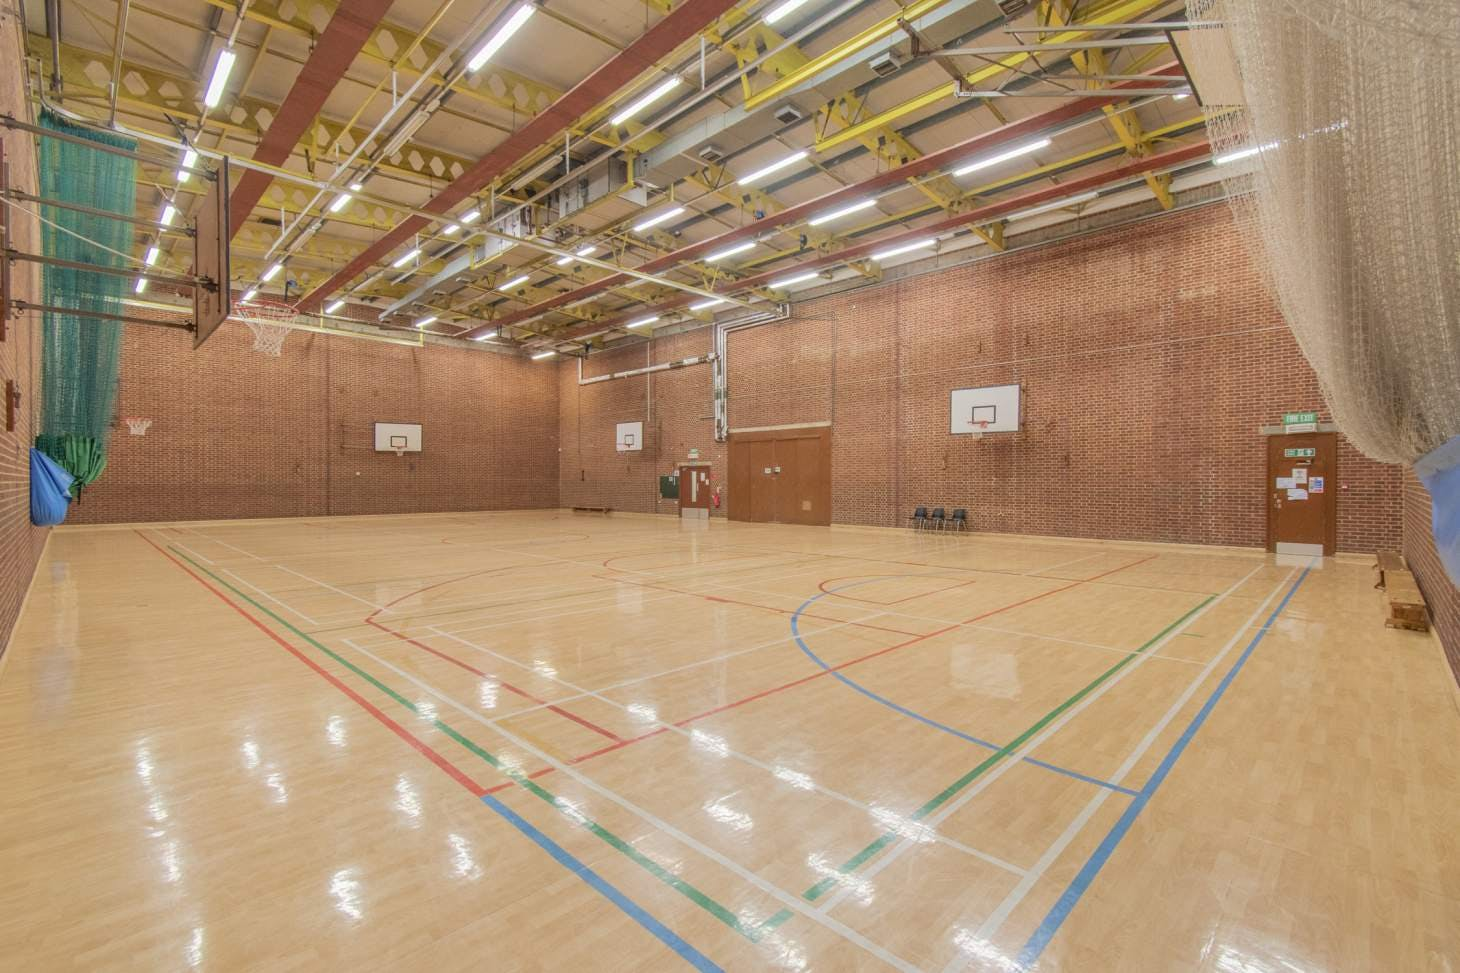 Pastures Youth and Sports Centre Nets | Sports hall cricket facilities